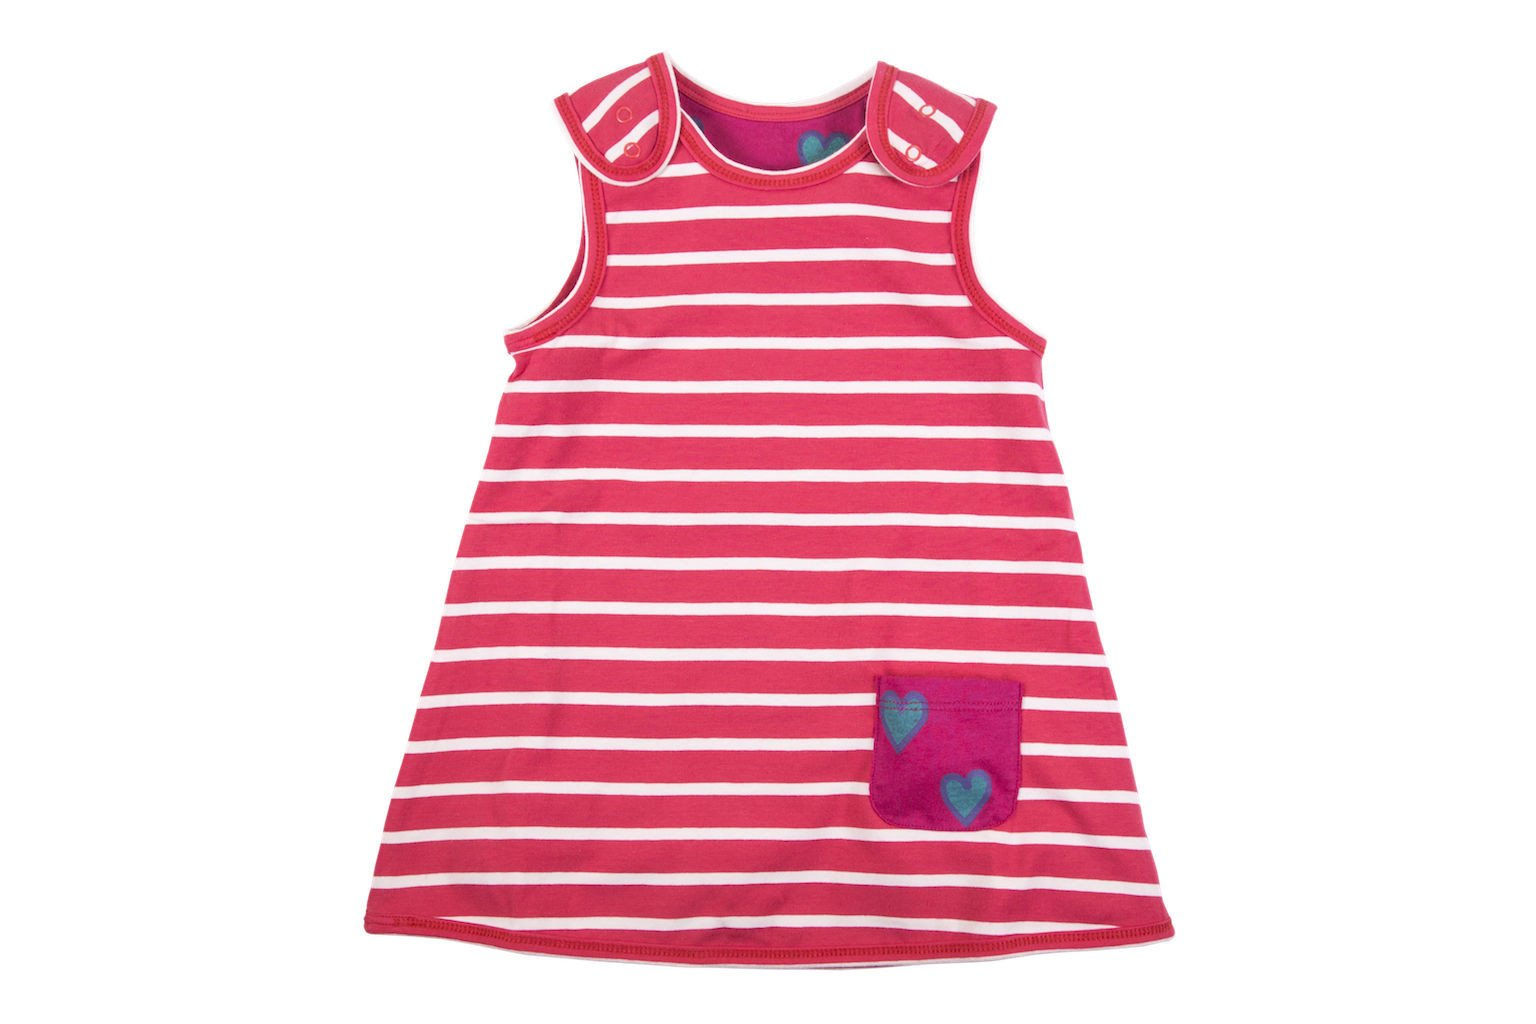 Pink Reversible Dress - HUGABUG